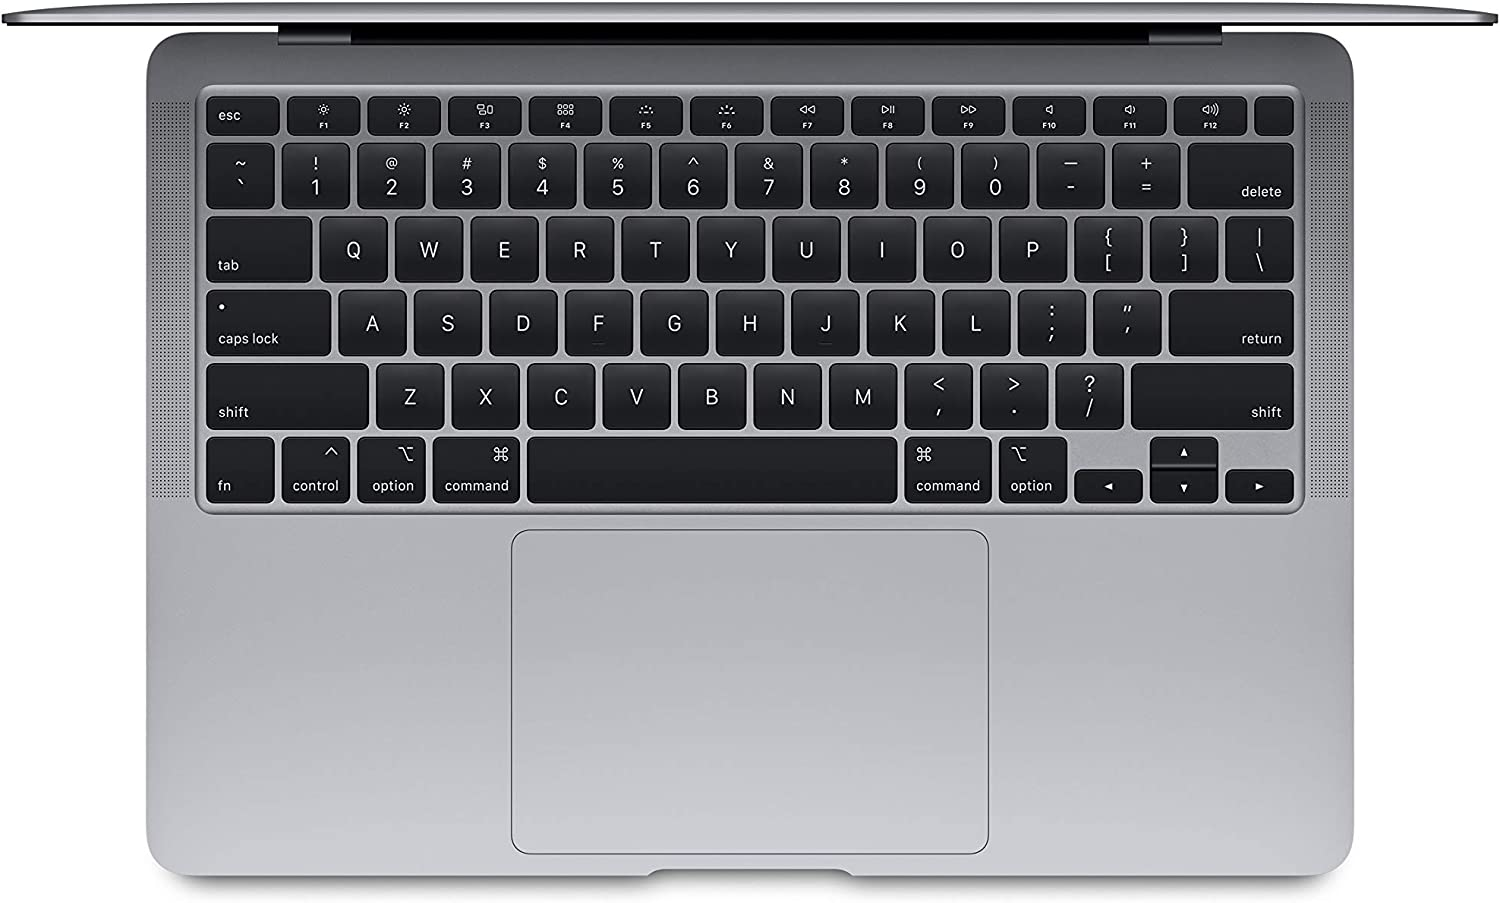 Amazon.com: Apple MacBook Air (13-inch Retina Display, 8GB RAM, 256GB SSD Storage) - Space Gray (Previous Model)